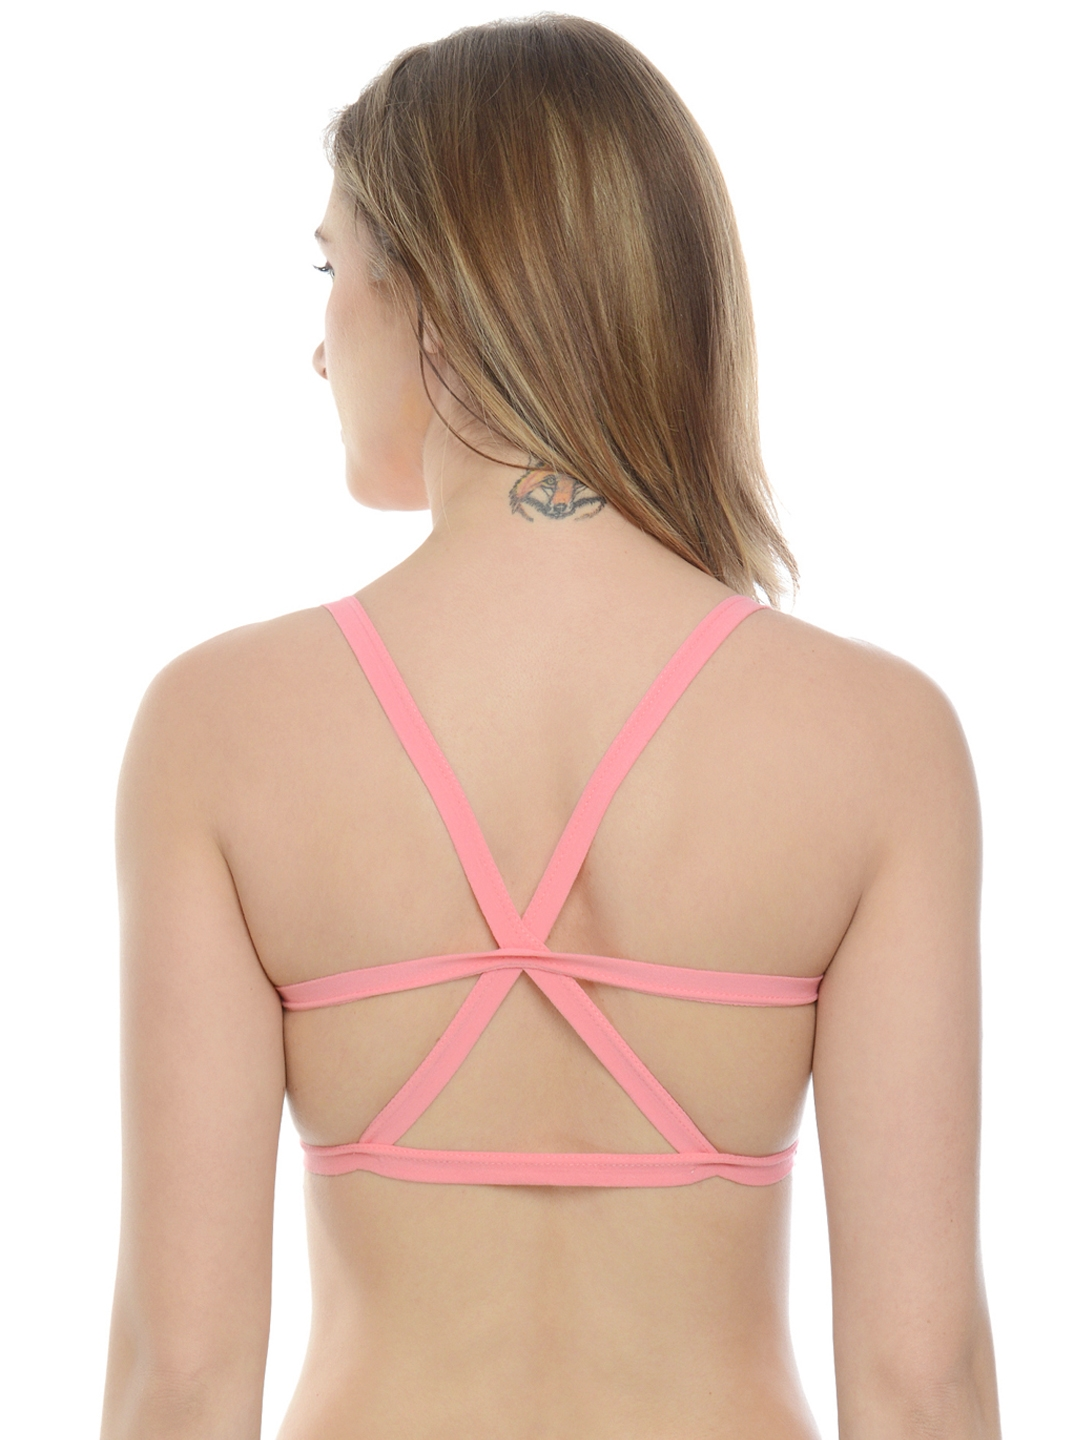 fe492bd088 Buy Da Intimo Pink Solid Non Wired Lightly Padded Bralette DI 832 ...